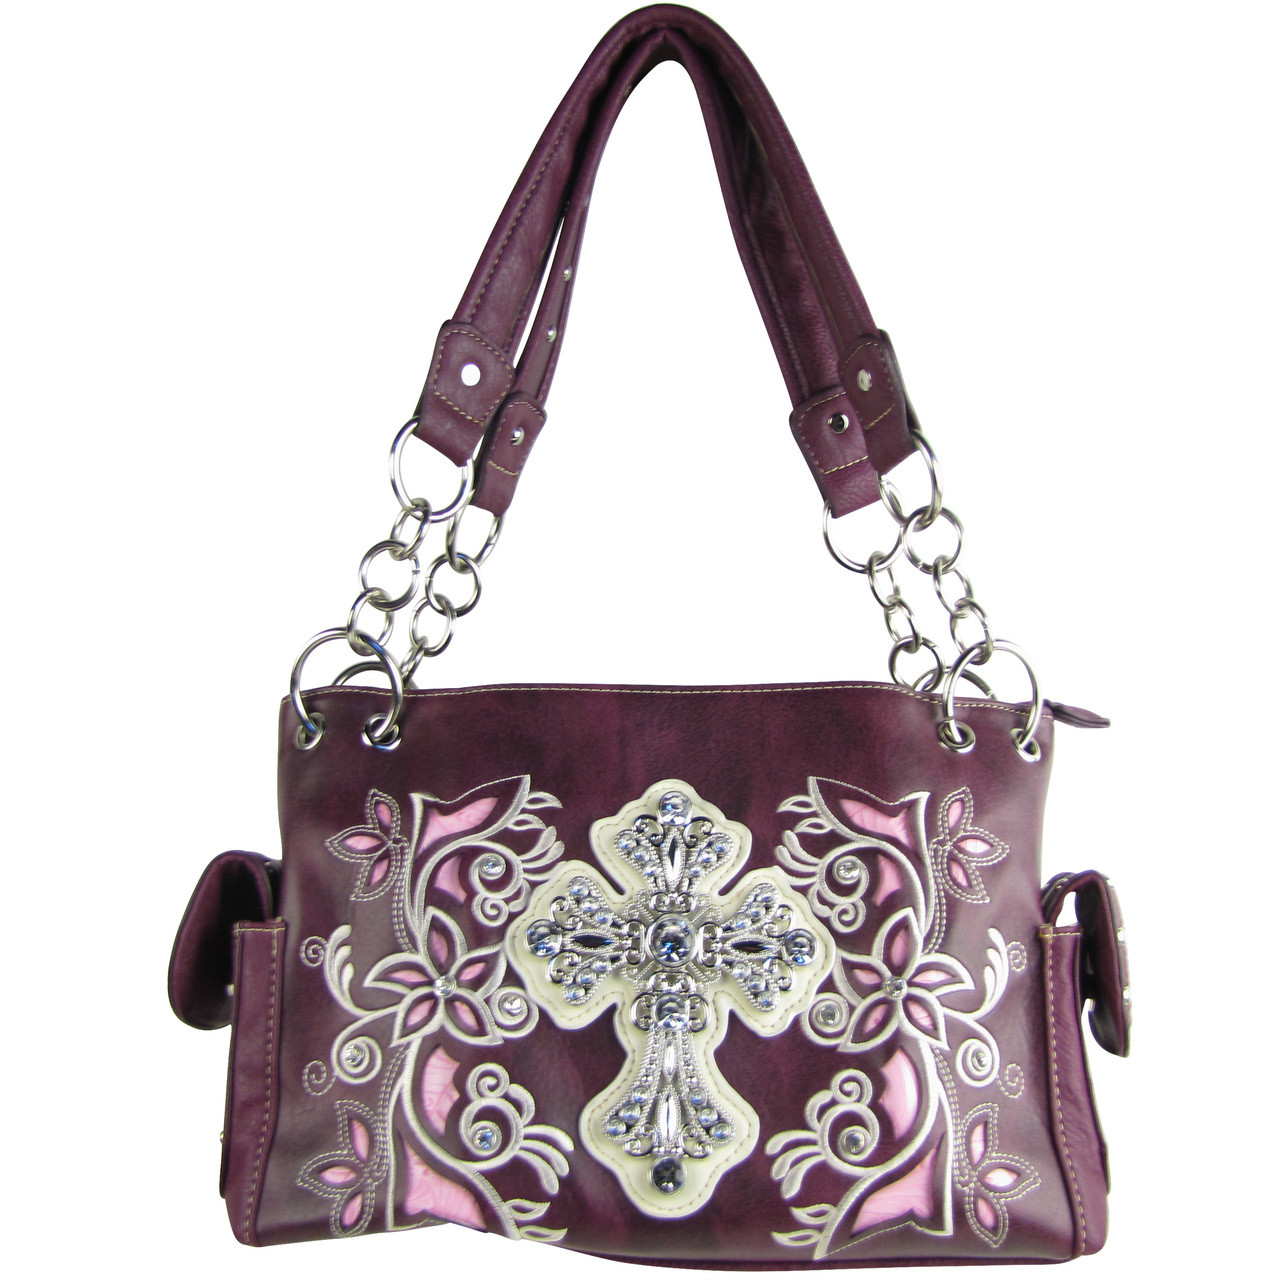 PURPLE FLOWER RHINESTONE CROSS LOOK SHOULDER HANDBAG HB1-84LCRPPL